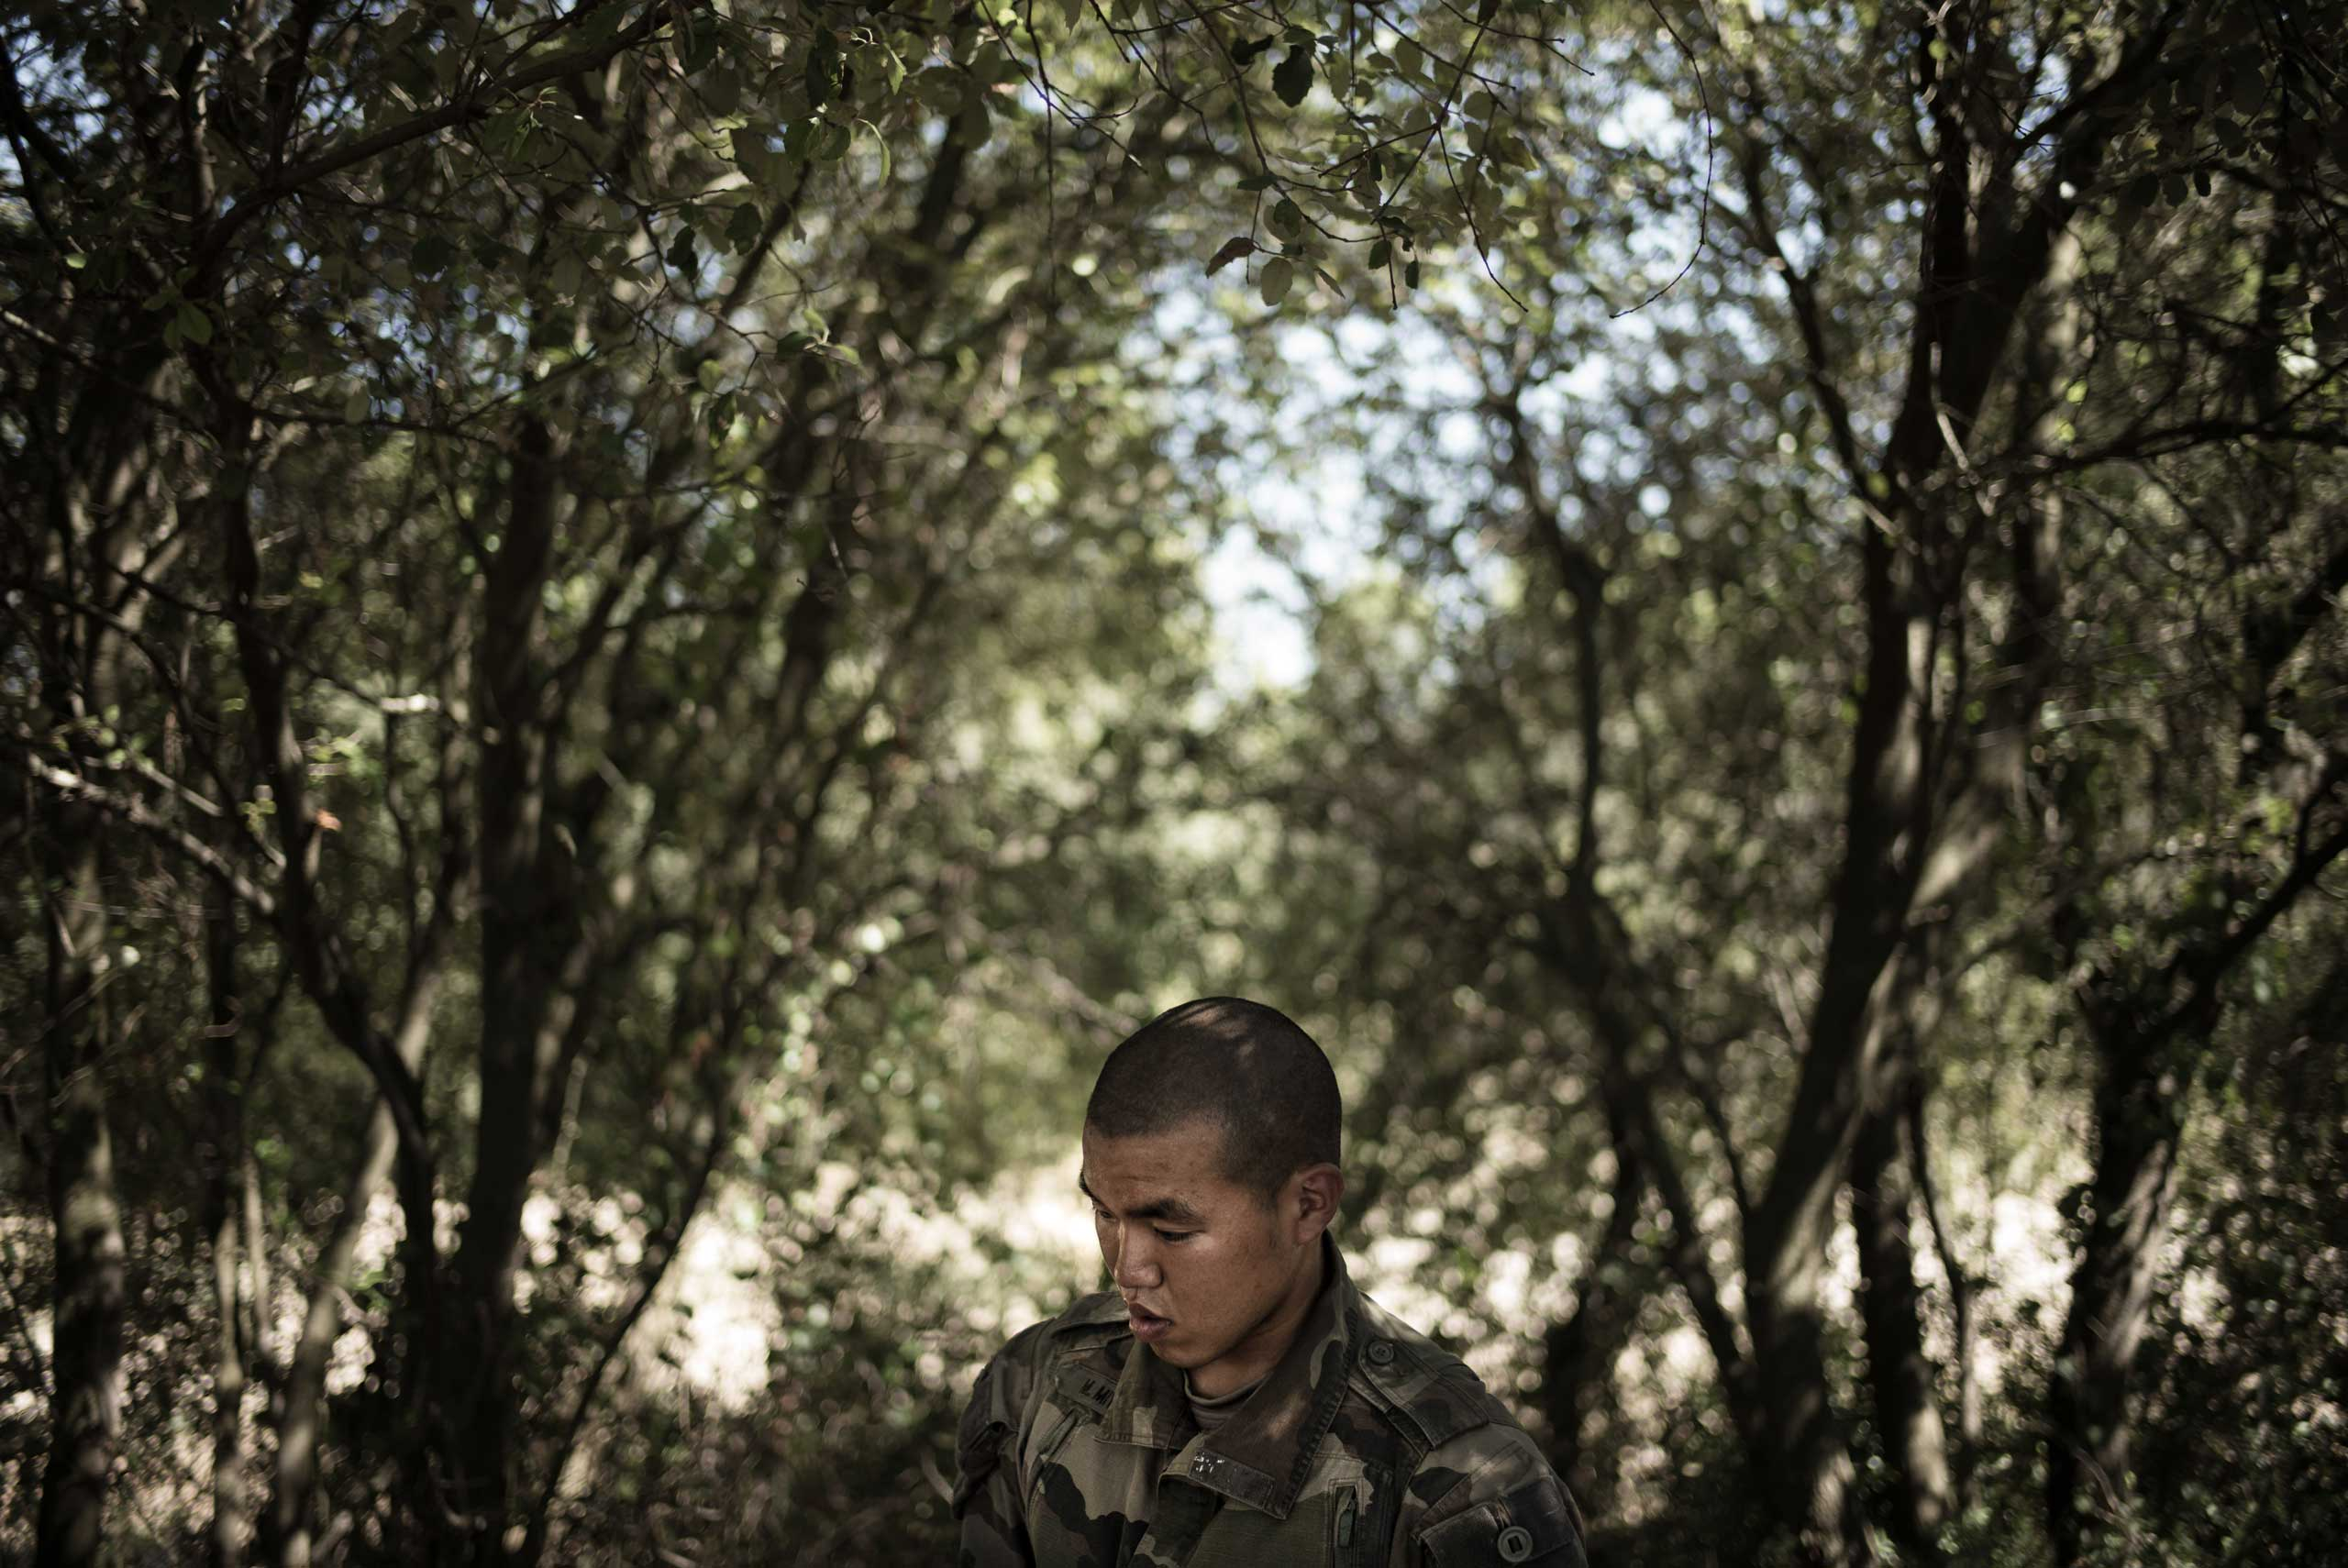 A Japanese Legionnaire is waiting for instructions during his training. Nimes, France. Aug. 11, 2015.